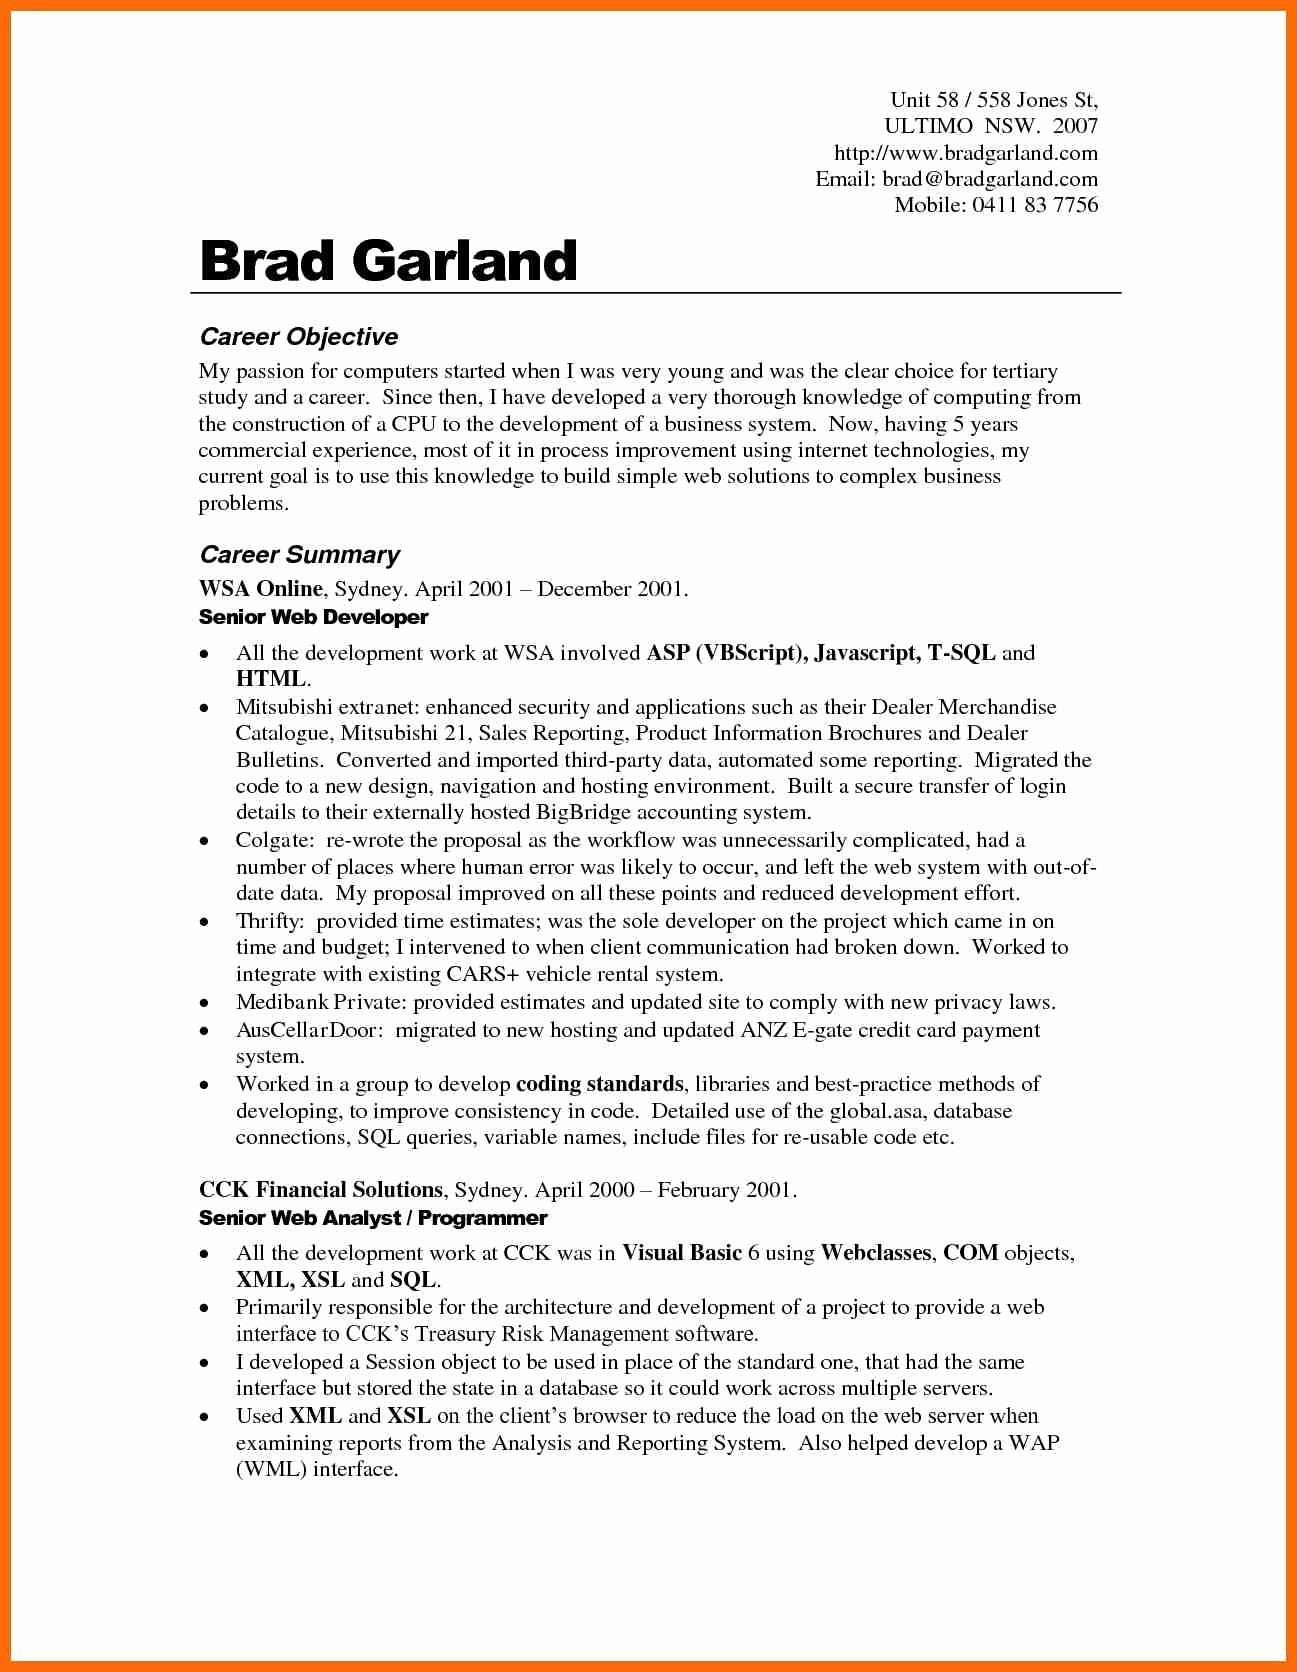 Resume Objective Examples  Sample Resume Objectives Career Change Career Change Resume Objective